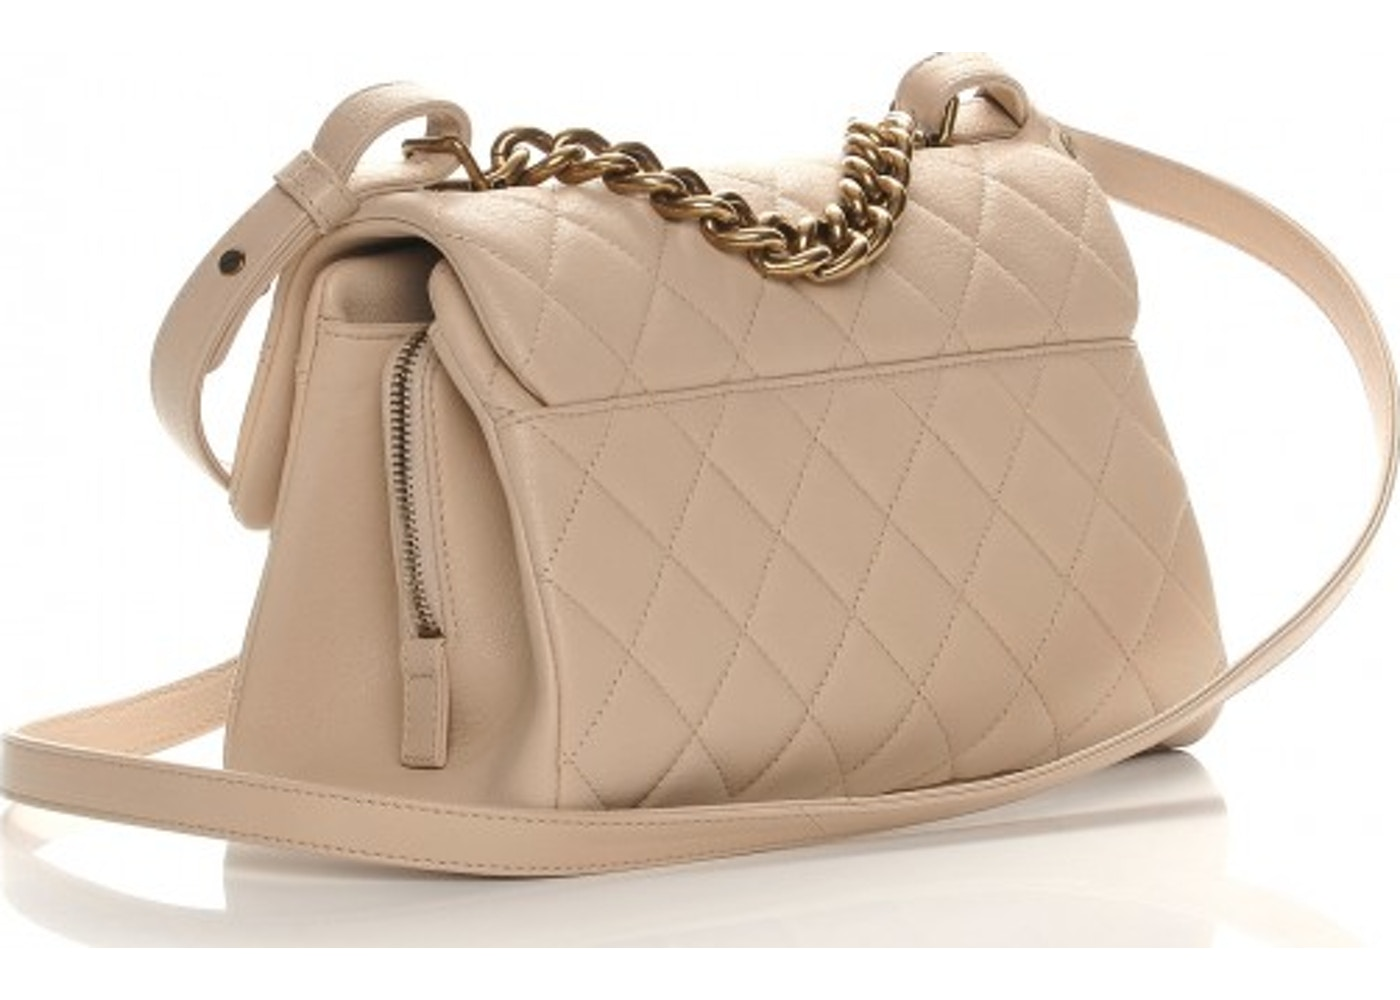 ac3fdf439073 Chanel Trapezio Flap Bag Quilted Shine Small Beige